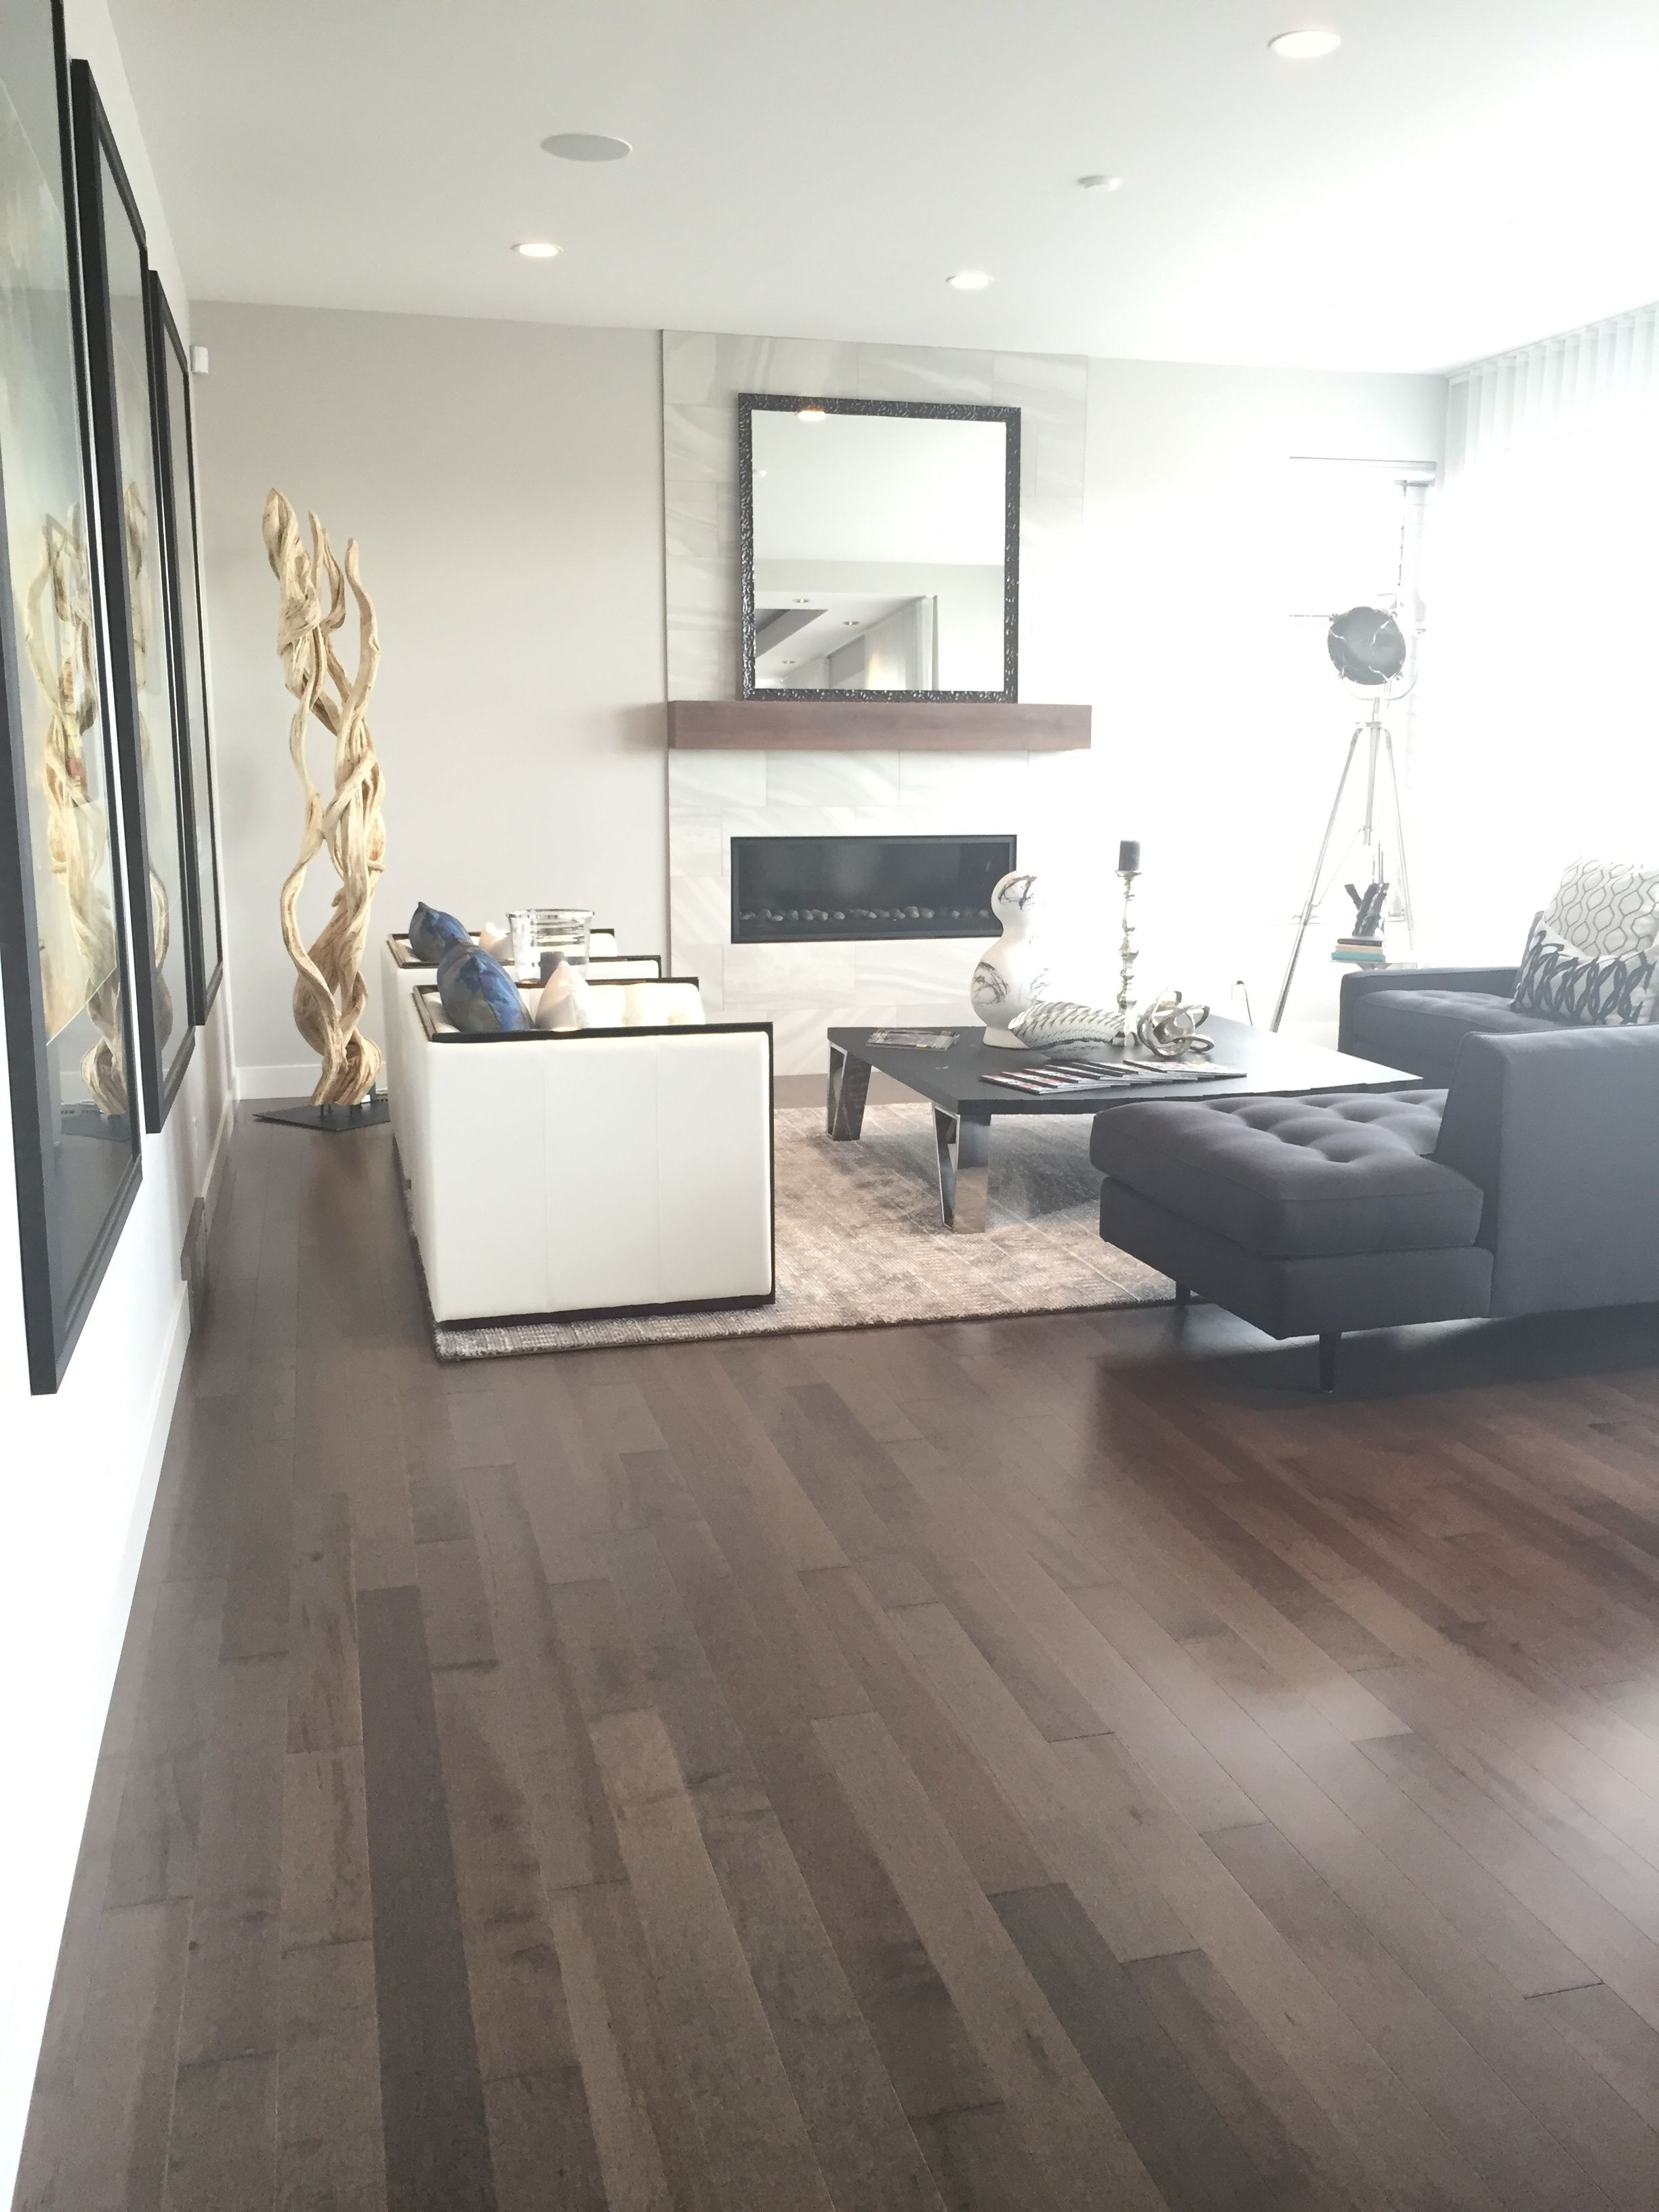 17 Ideal Hardwood Flooring Quad Cities 2021 free download hardwood flooring quad cities of smoky grey essential hard maple tradition lauzon hardwood pertaining to beautiful living room from the cantata showhome featuring lauzons smokey grey hard ma